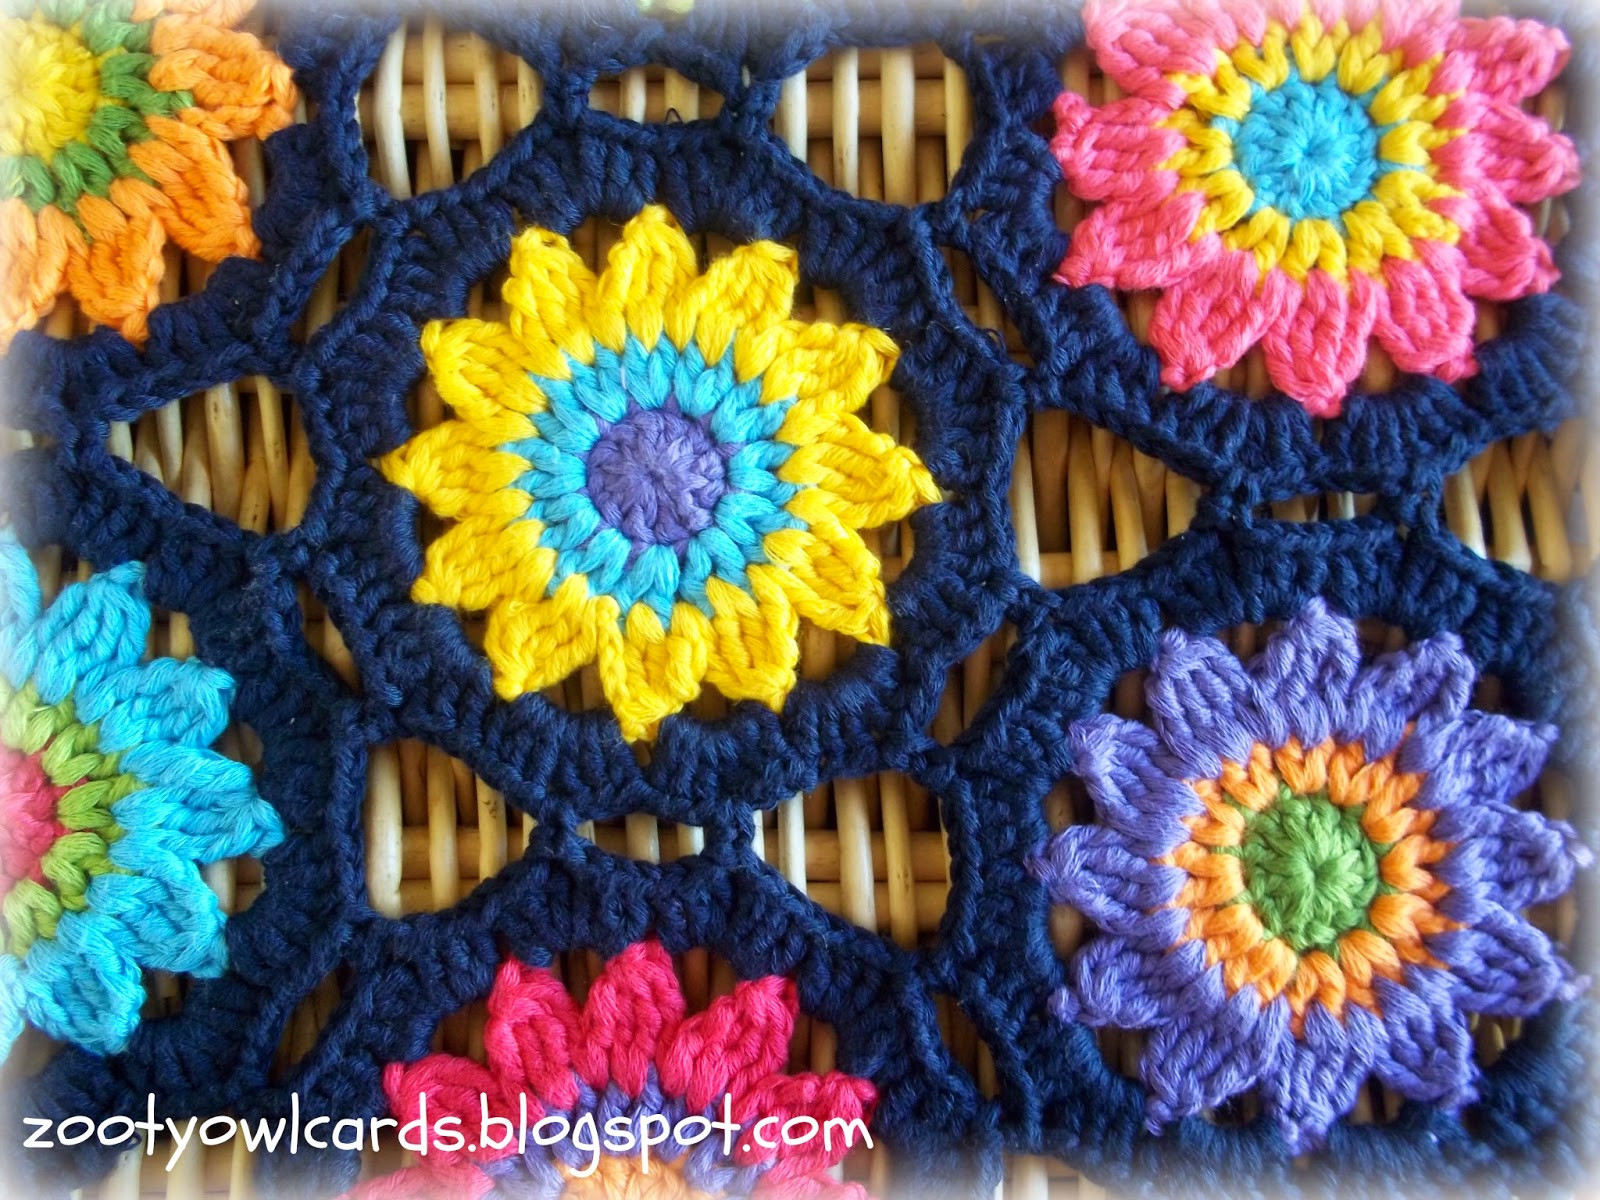 Inspirational Crochet Sunny Flower Motif Table Runner ⋆ Crochet Kingdom Crochet Kingdom Of Gorgeous 50 Pictures Crochet Kingdom